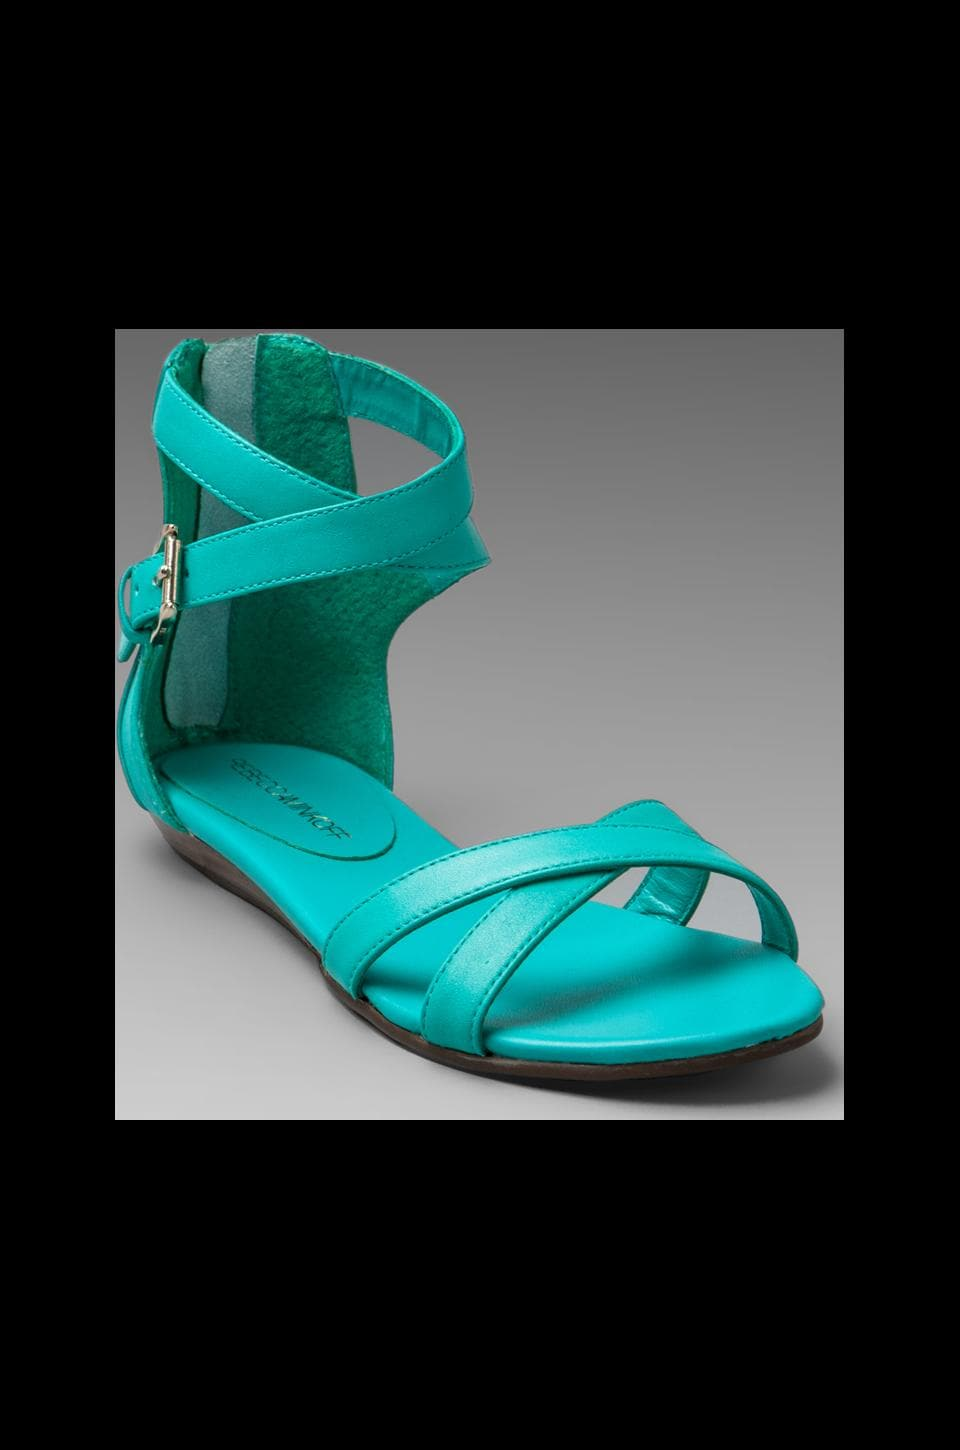 Rebecca Minkoff Bettina Sandal in Hot Teal